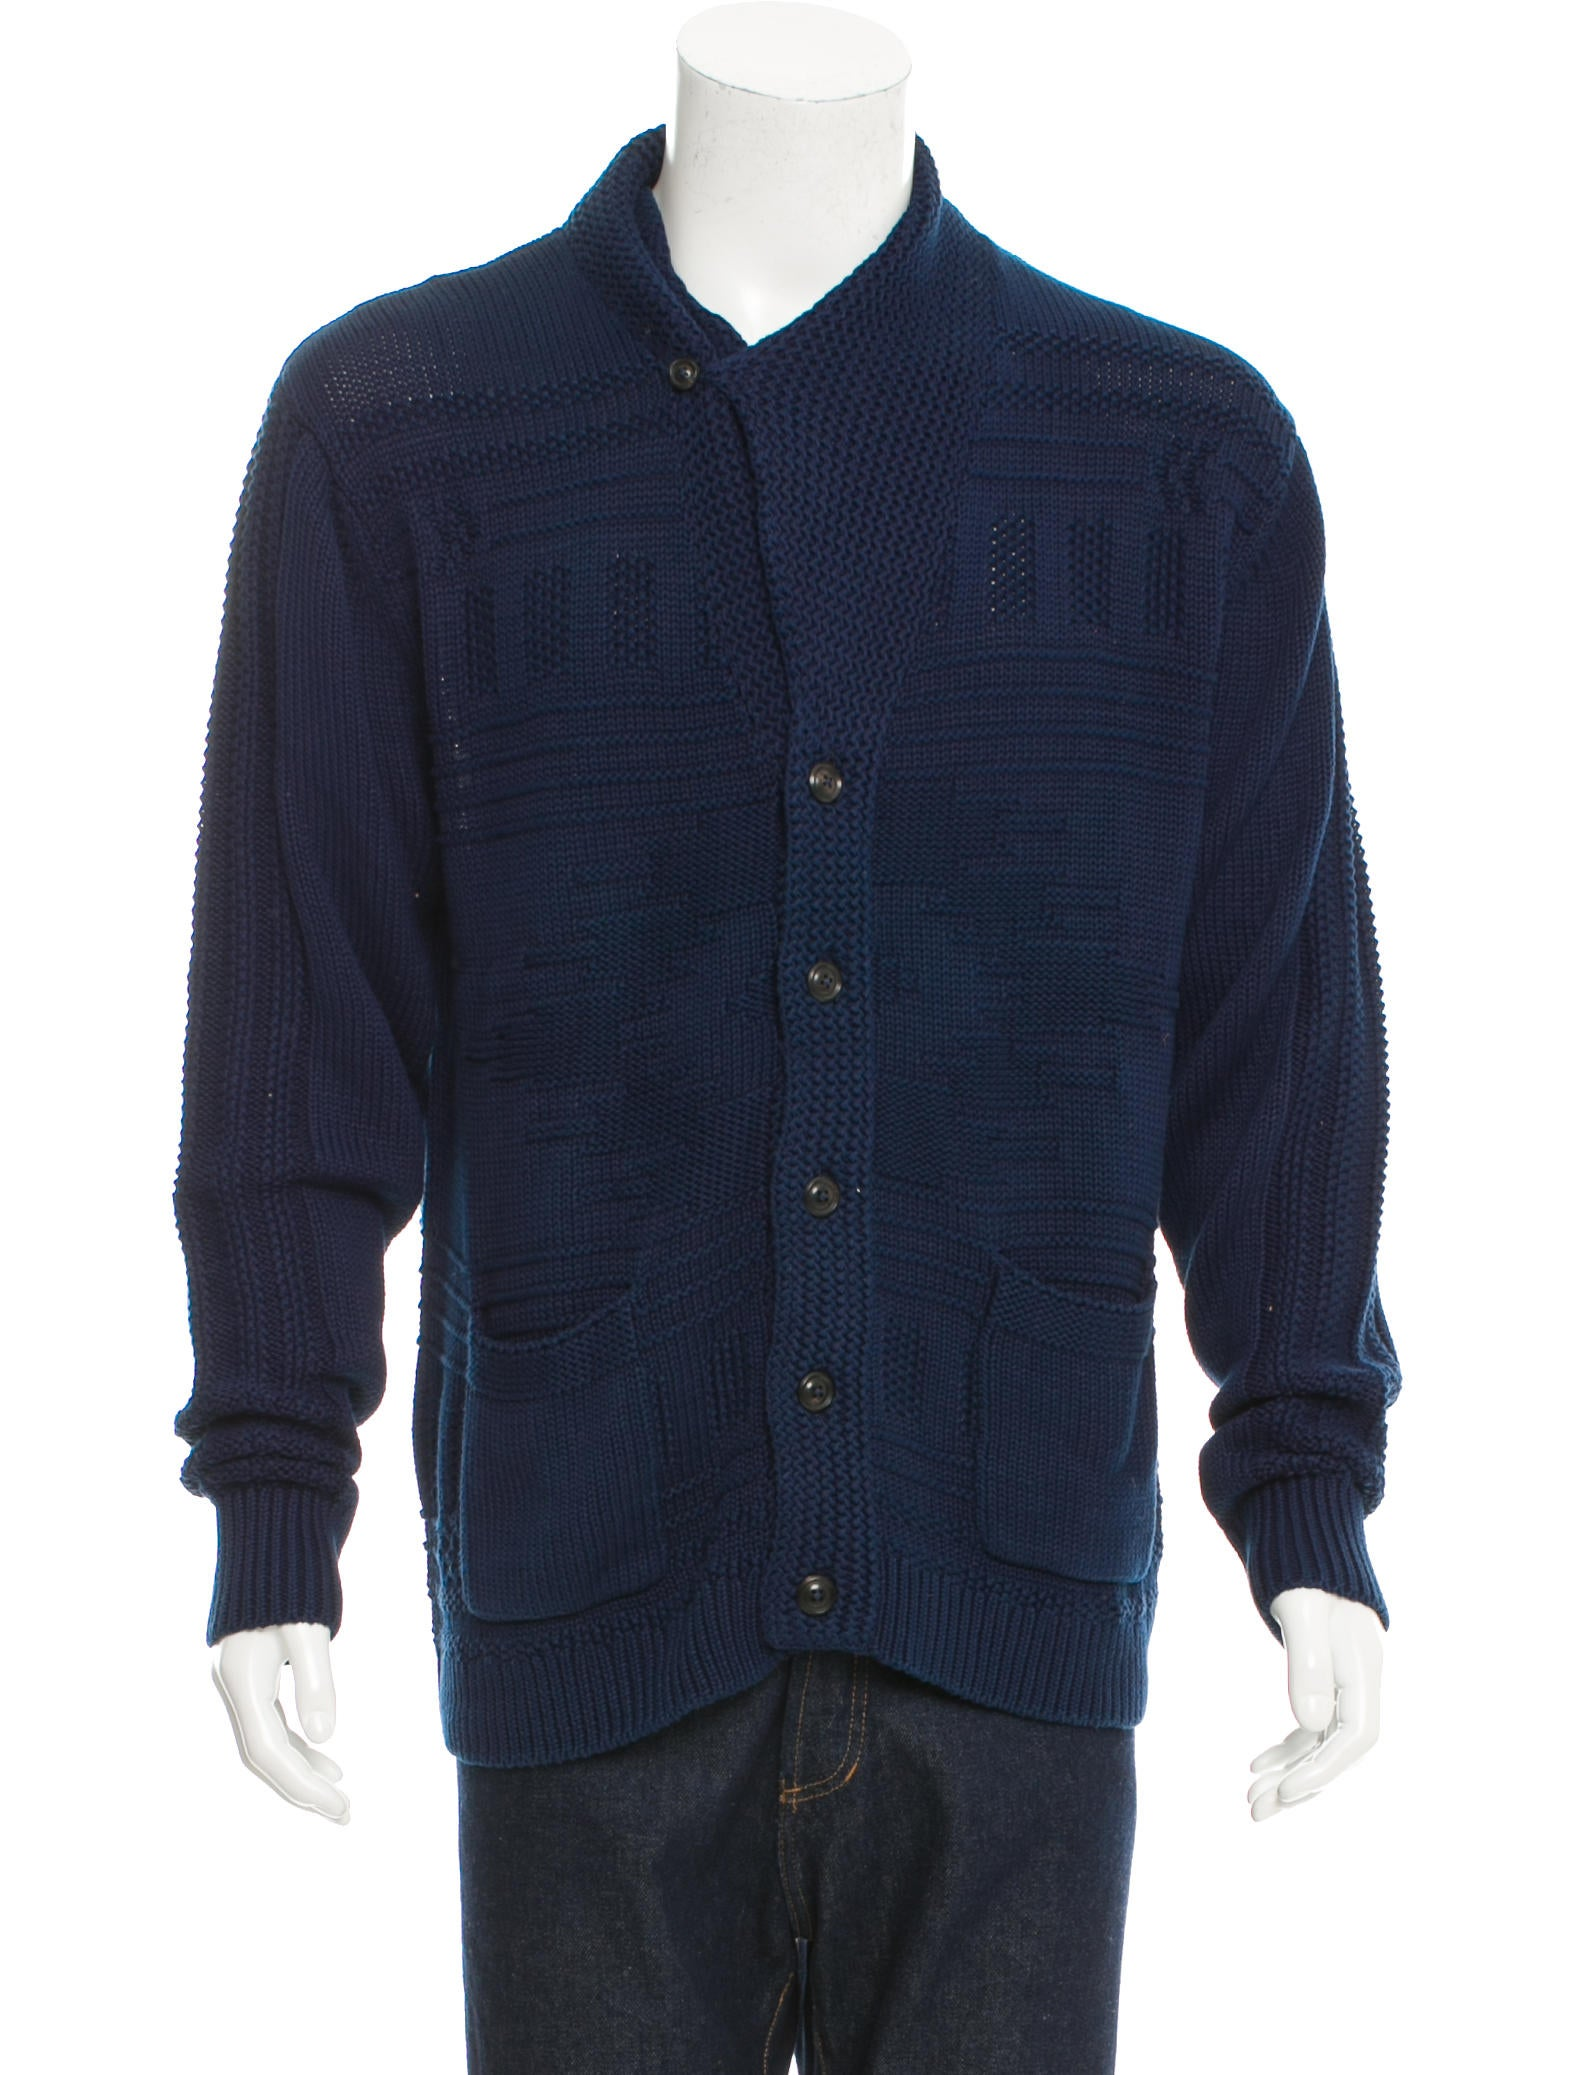 Shop for the mens trendy sweaters and cardigans online, including mens knitwear, cardigan sweaters, wool sweaters, long cardigan and all kinds of cool sweaters and casual cardigan for men at best price from hitmixeoo.gq